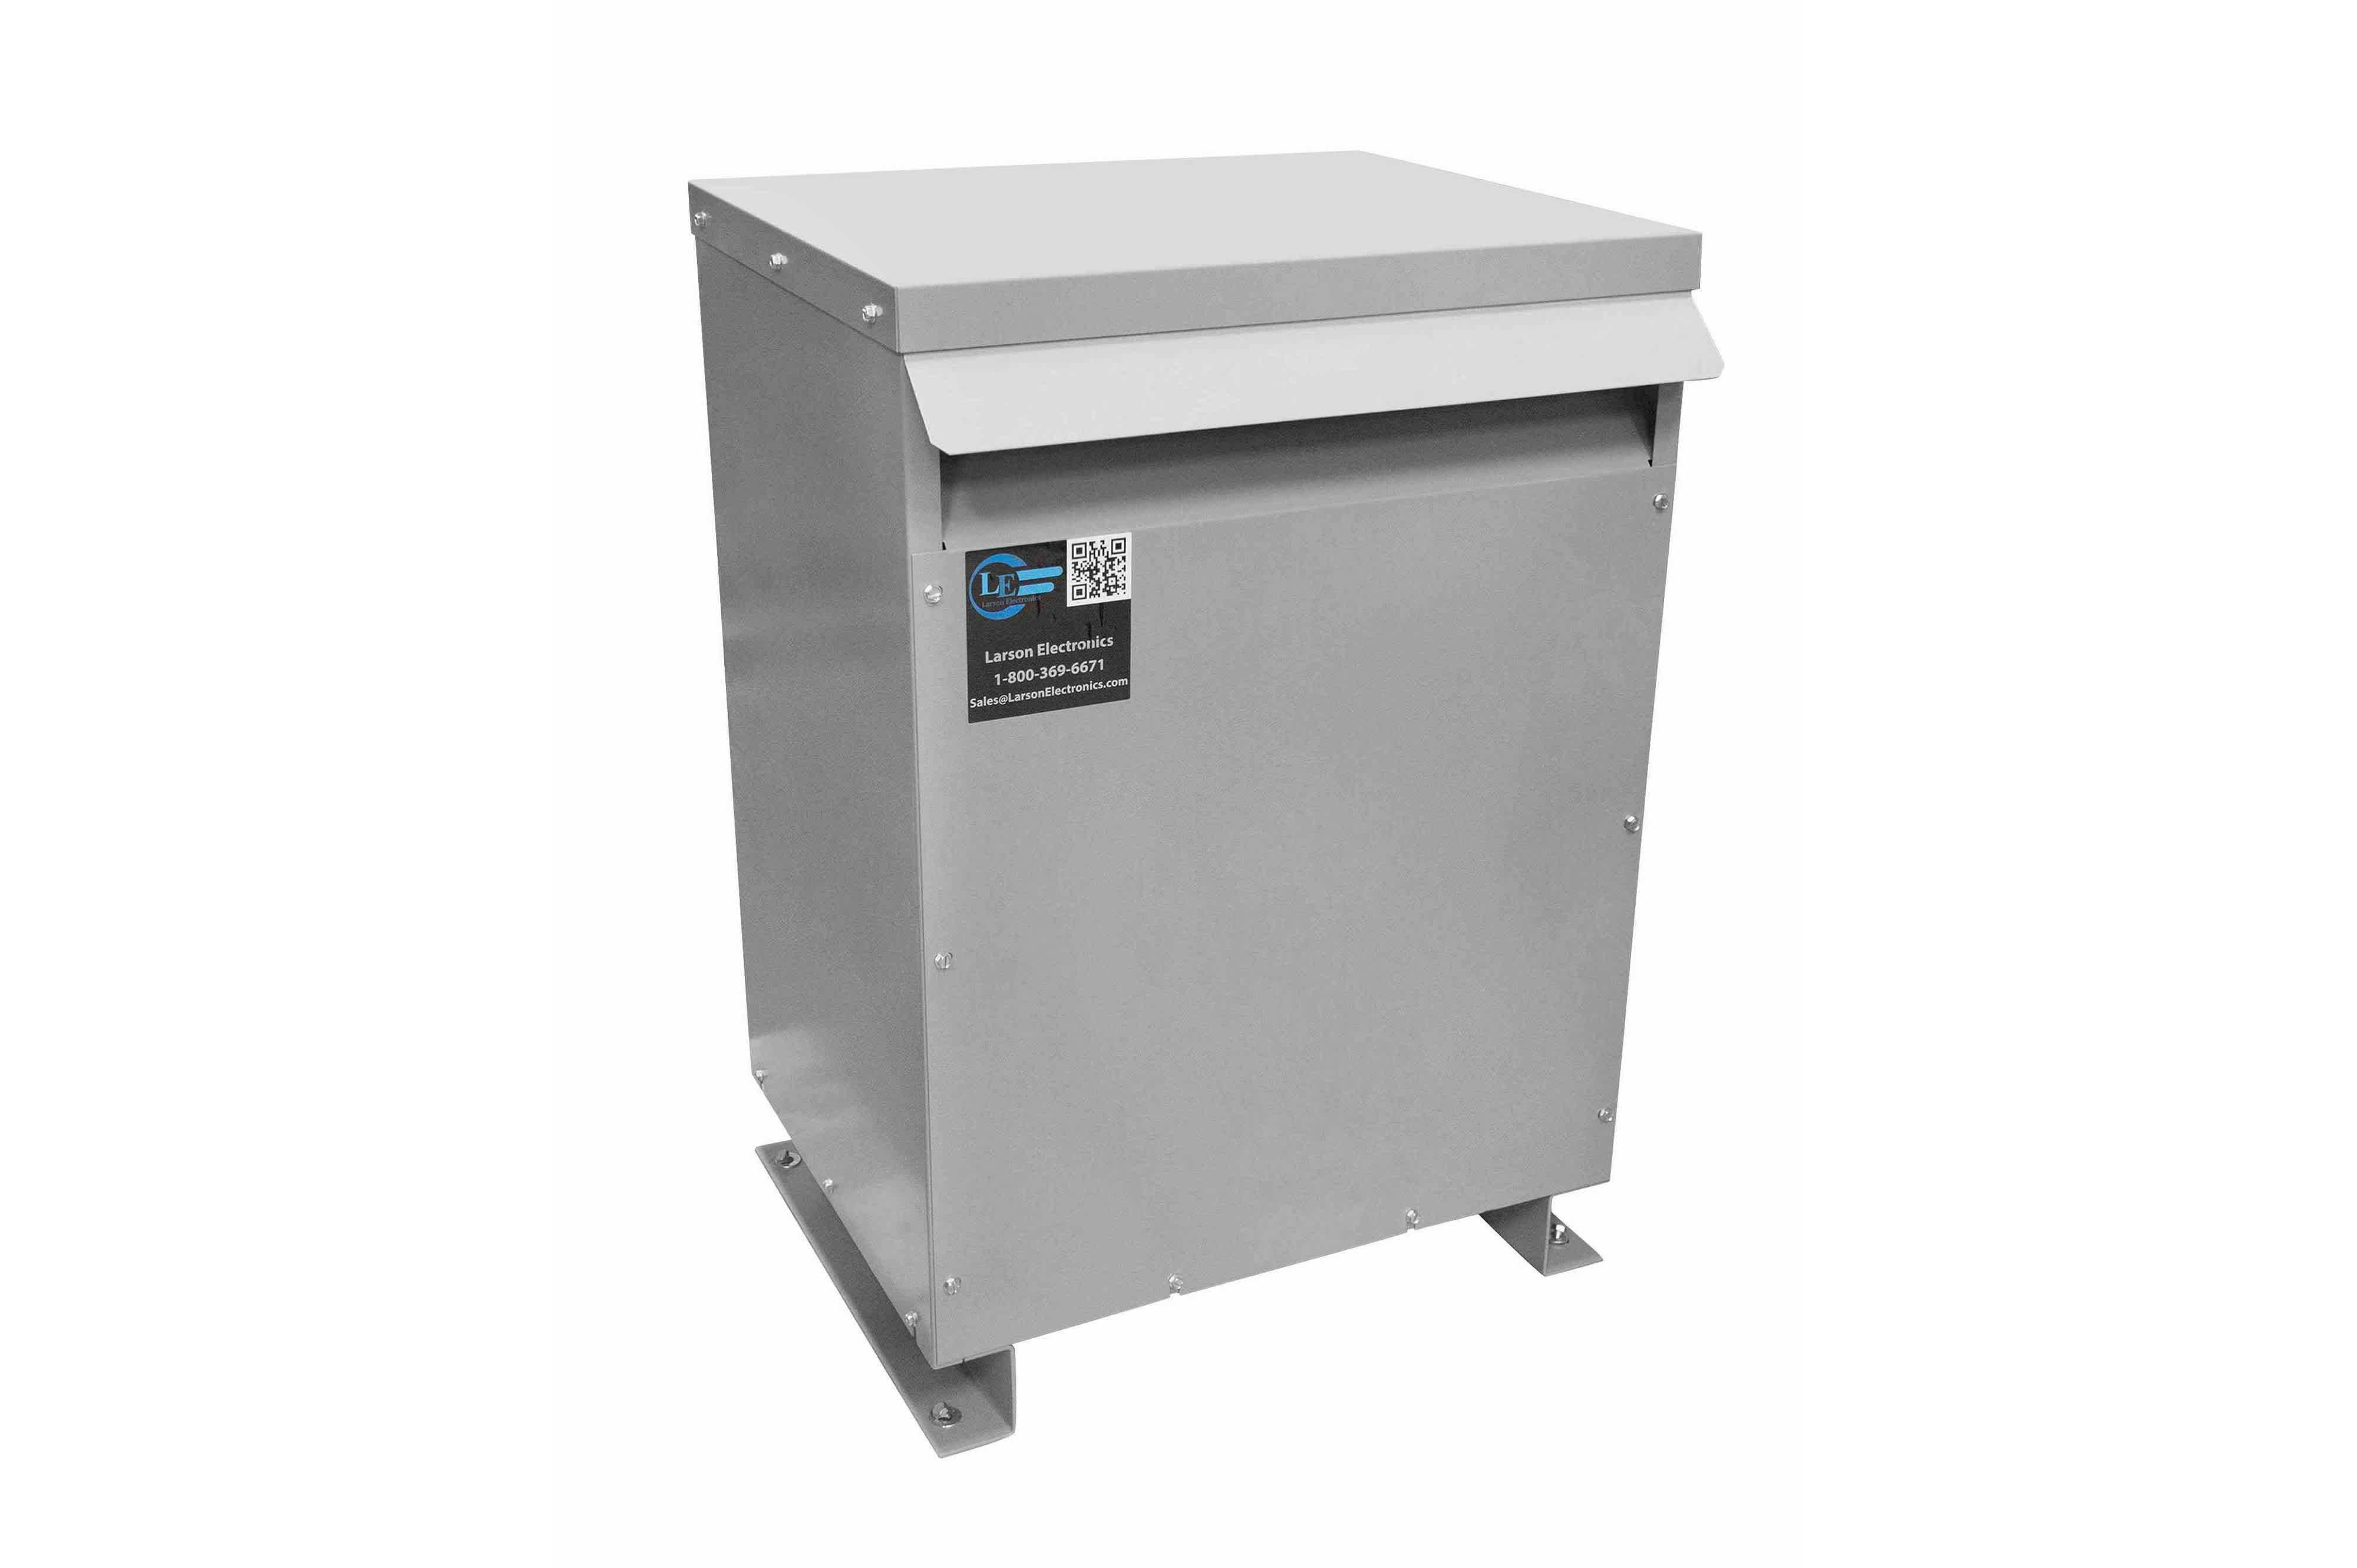 75 kVA 3PH Isolation Transformer, 415V Wye Primary, 480Y/277 Wye-N Secondary, N3R, Ventilated, 60 Hz